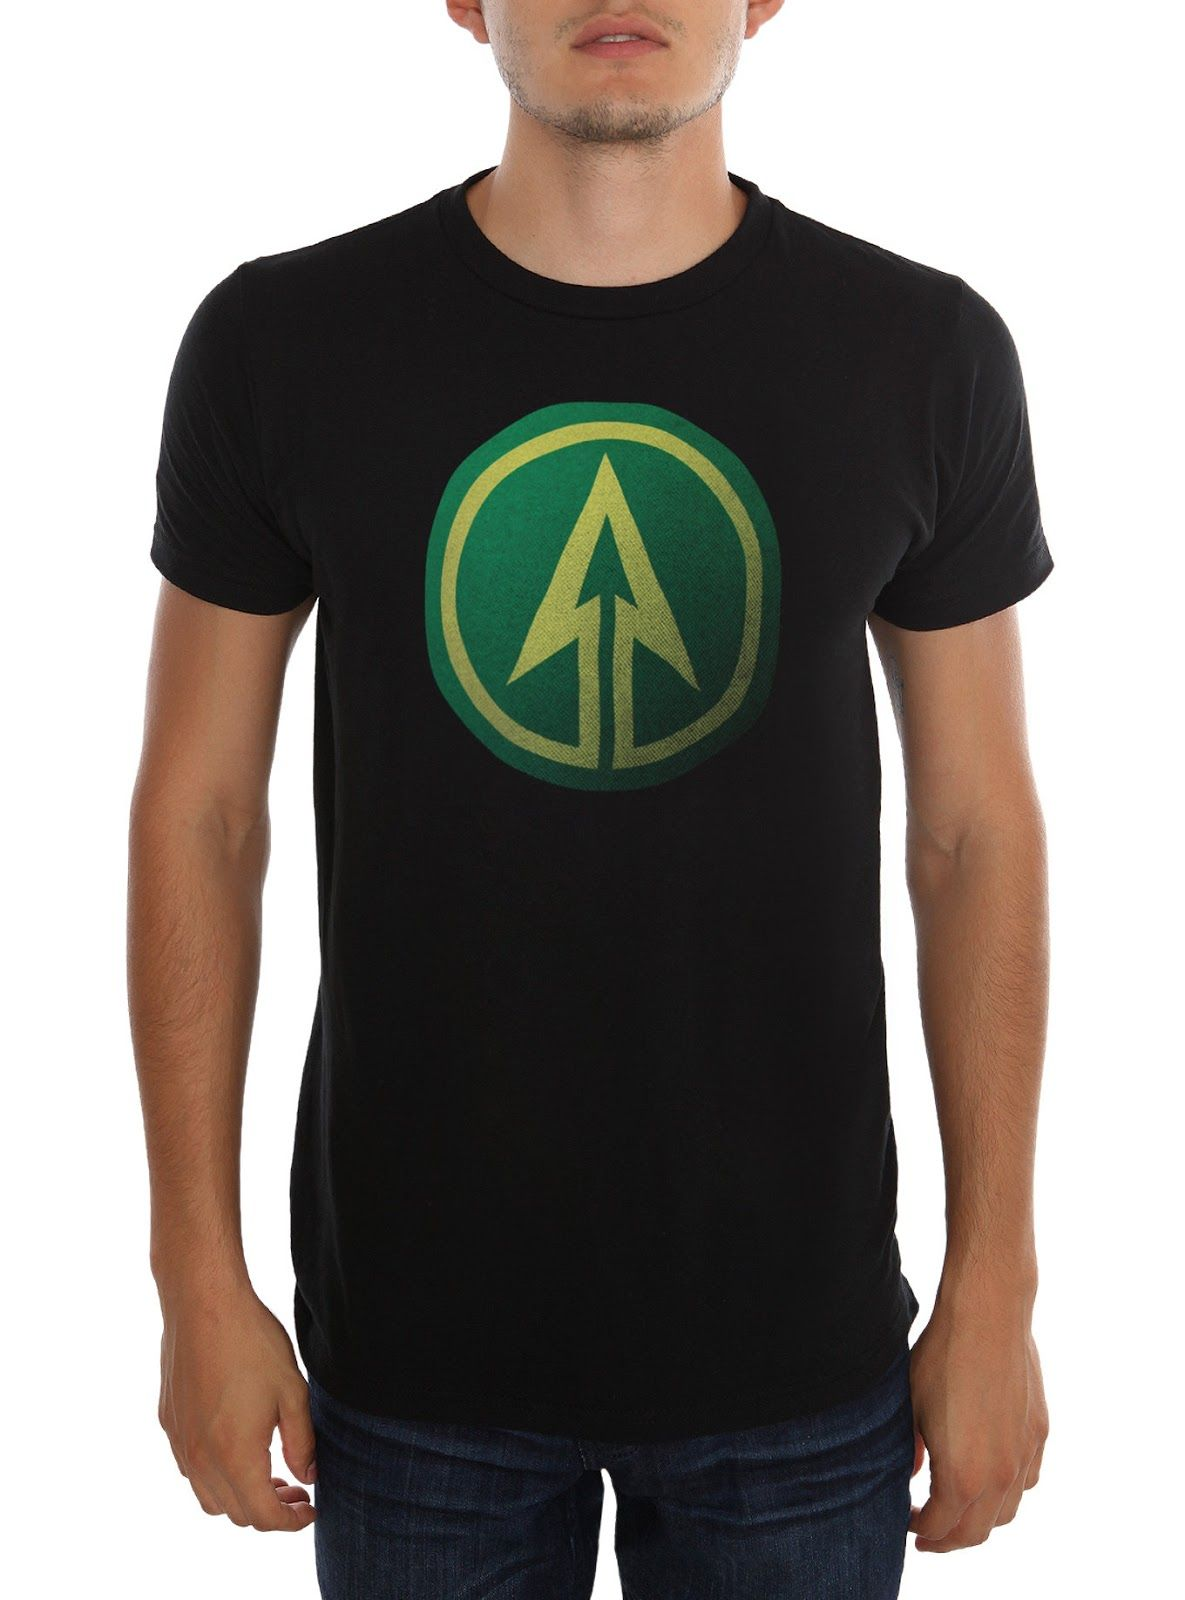 Arrow Cross The Green Shirts Rise Again Arrow Green Check Shirt